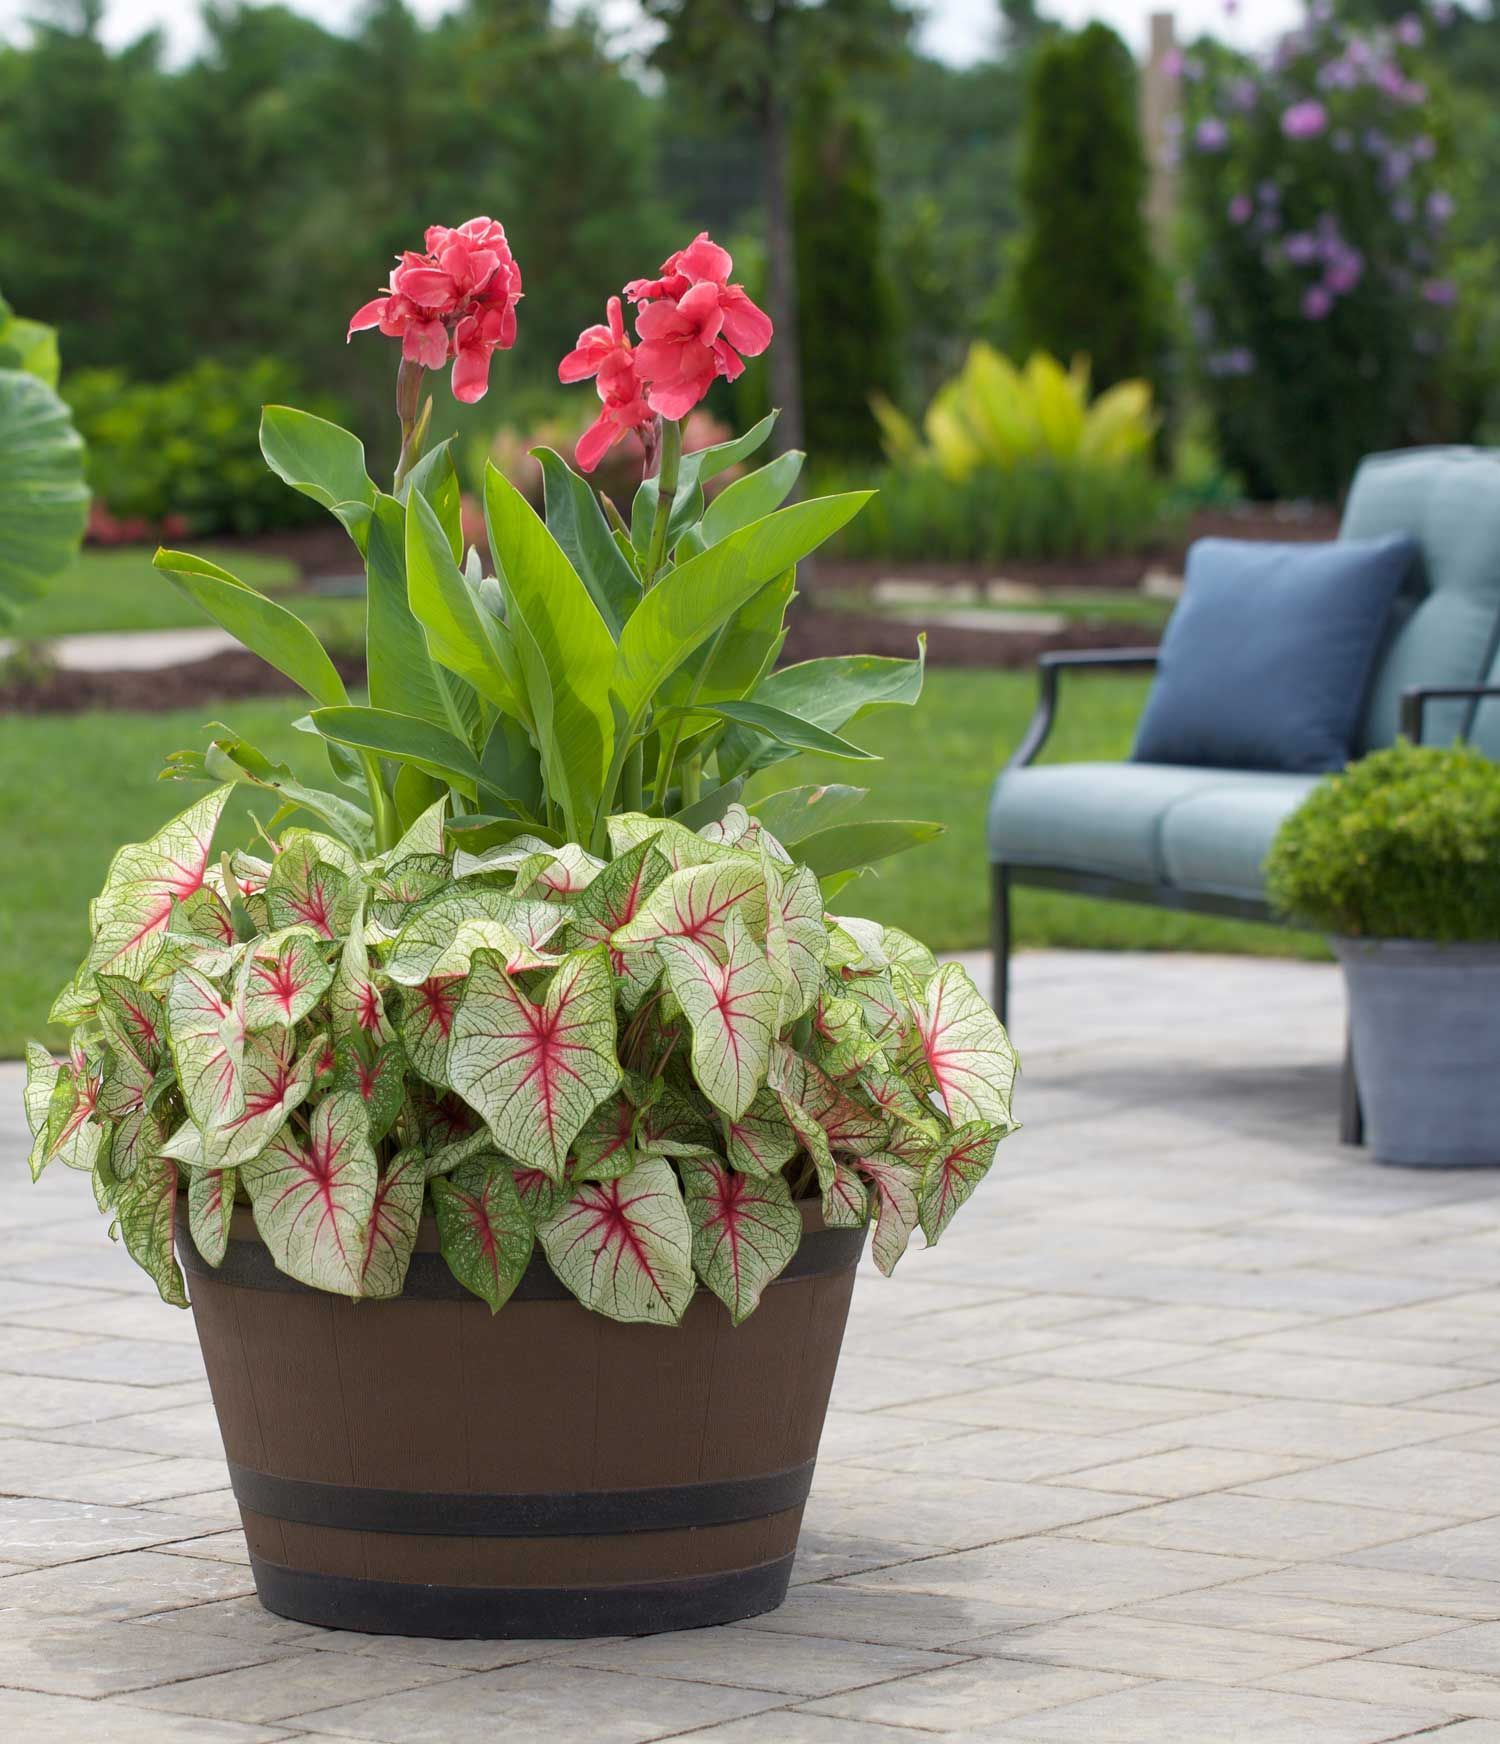 Part of the fun of growing cannas is finding creative ways to use